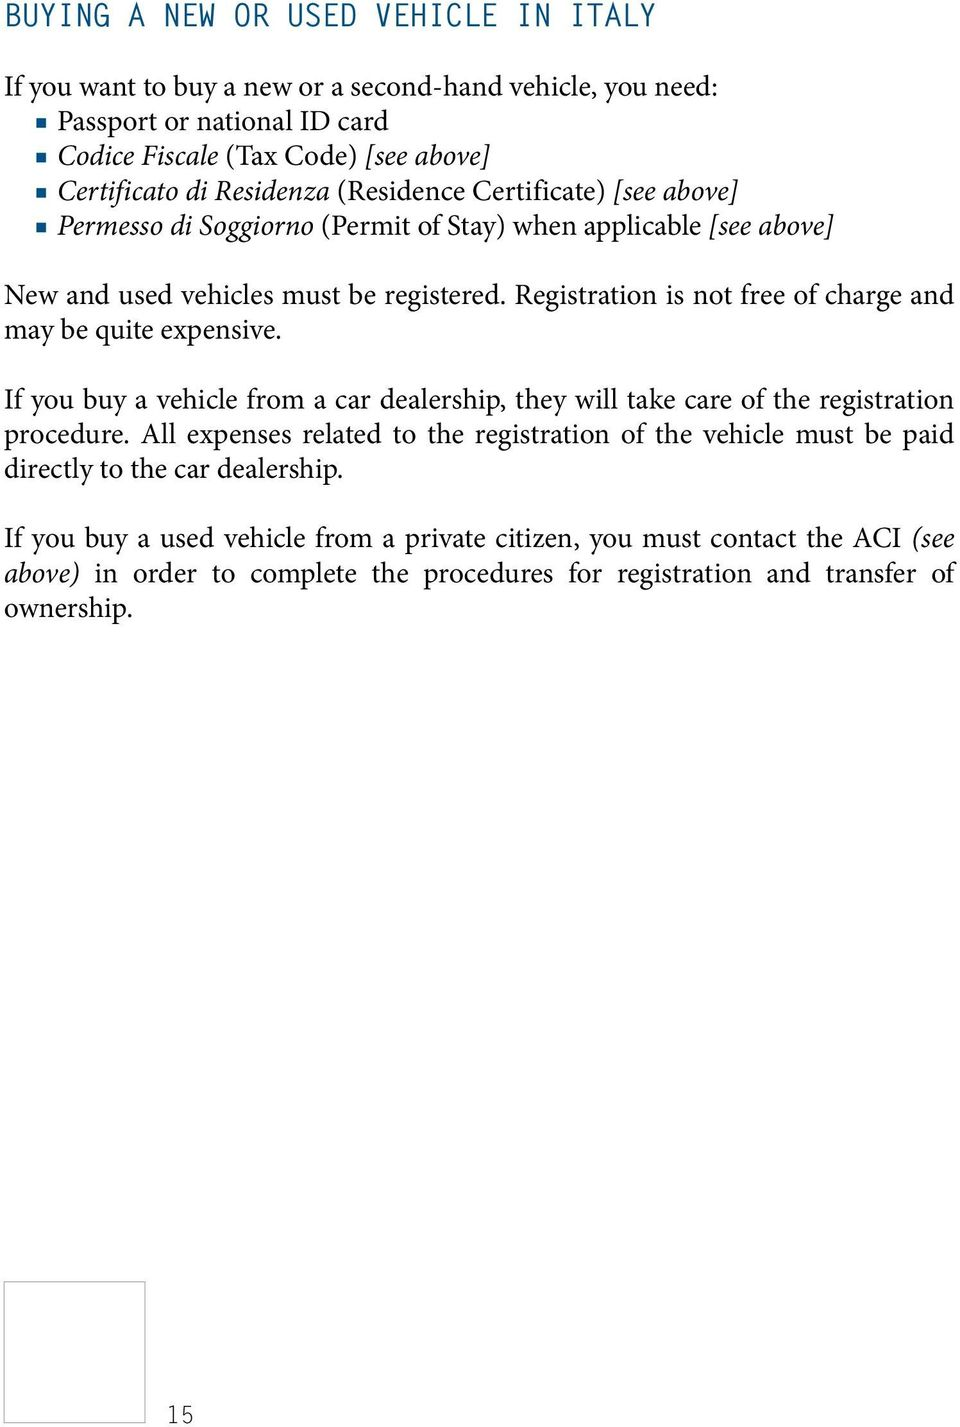 Registration is not free of charge and may be quite expensive. If you buy a vehicle from a car dealership, they will take care of the registration procedure.